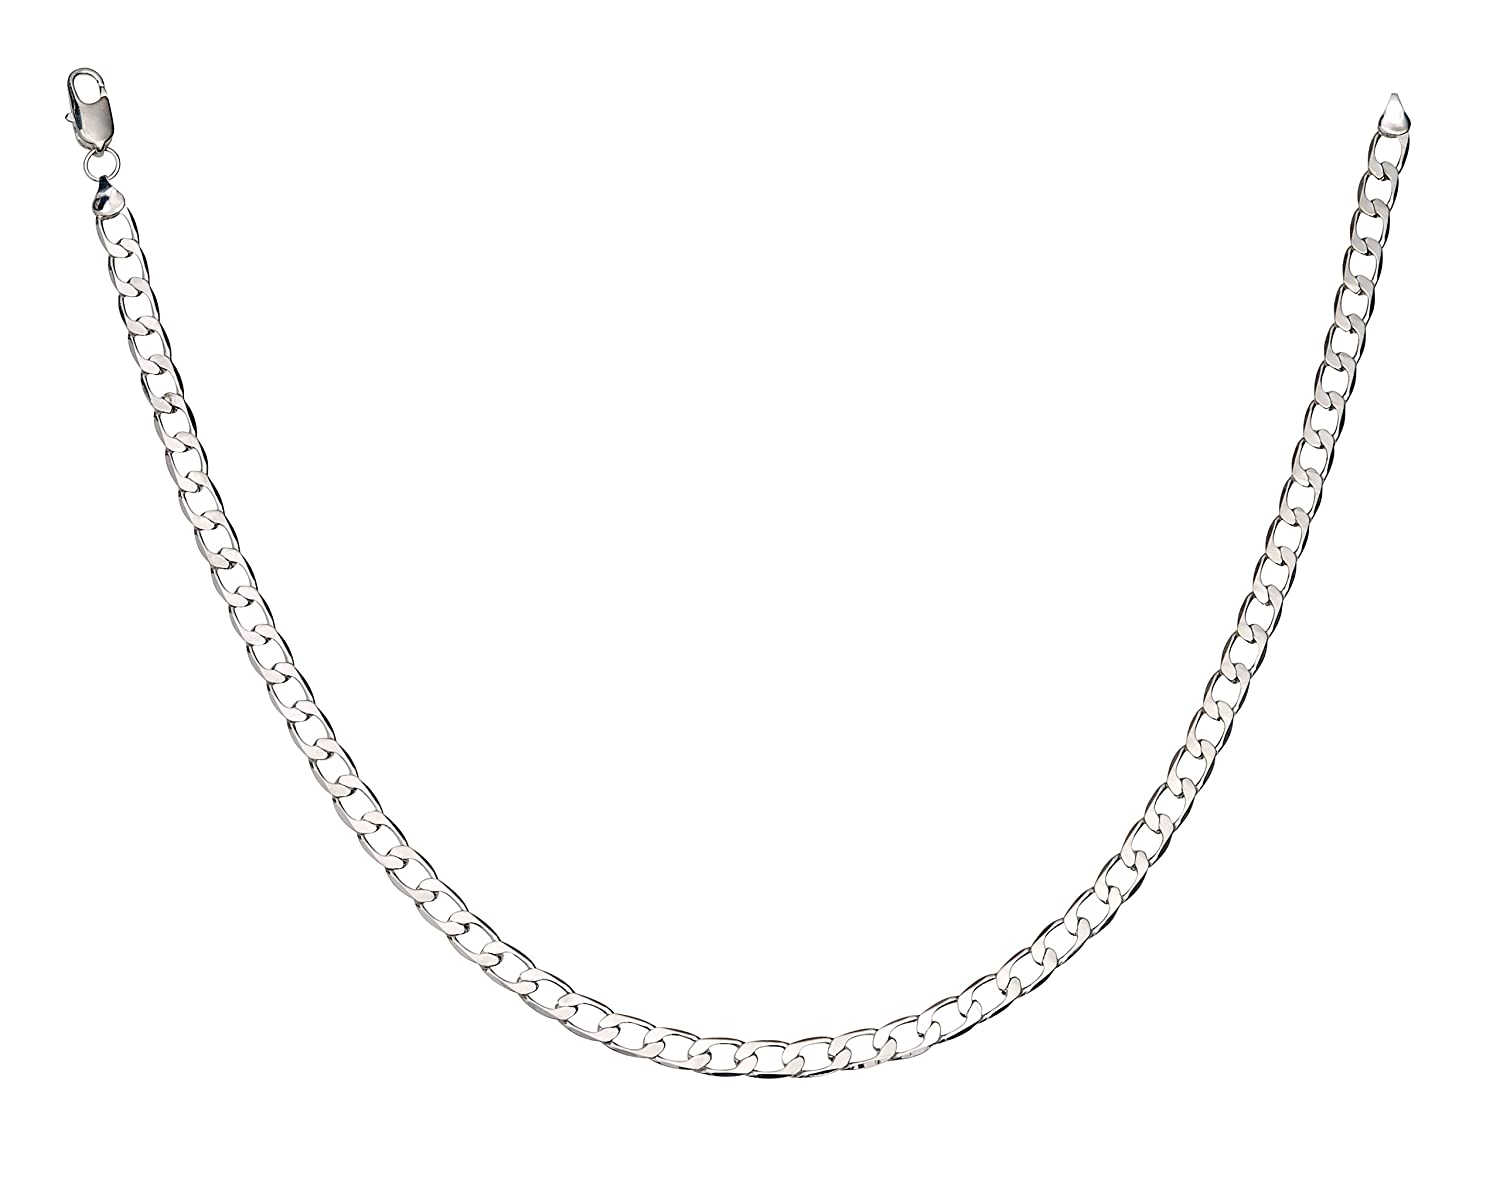 4a4d2407871aa6 Silvadore - Mens Silver Curb Chain Necklace - 20'' (51cm) 36G 8mm Solid  Flat Thick Heavy Strong - 925 Sterling Silver Plated - Free Gift Boxed -  GUARANTEED ...